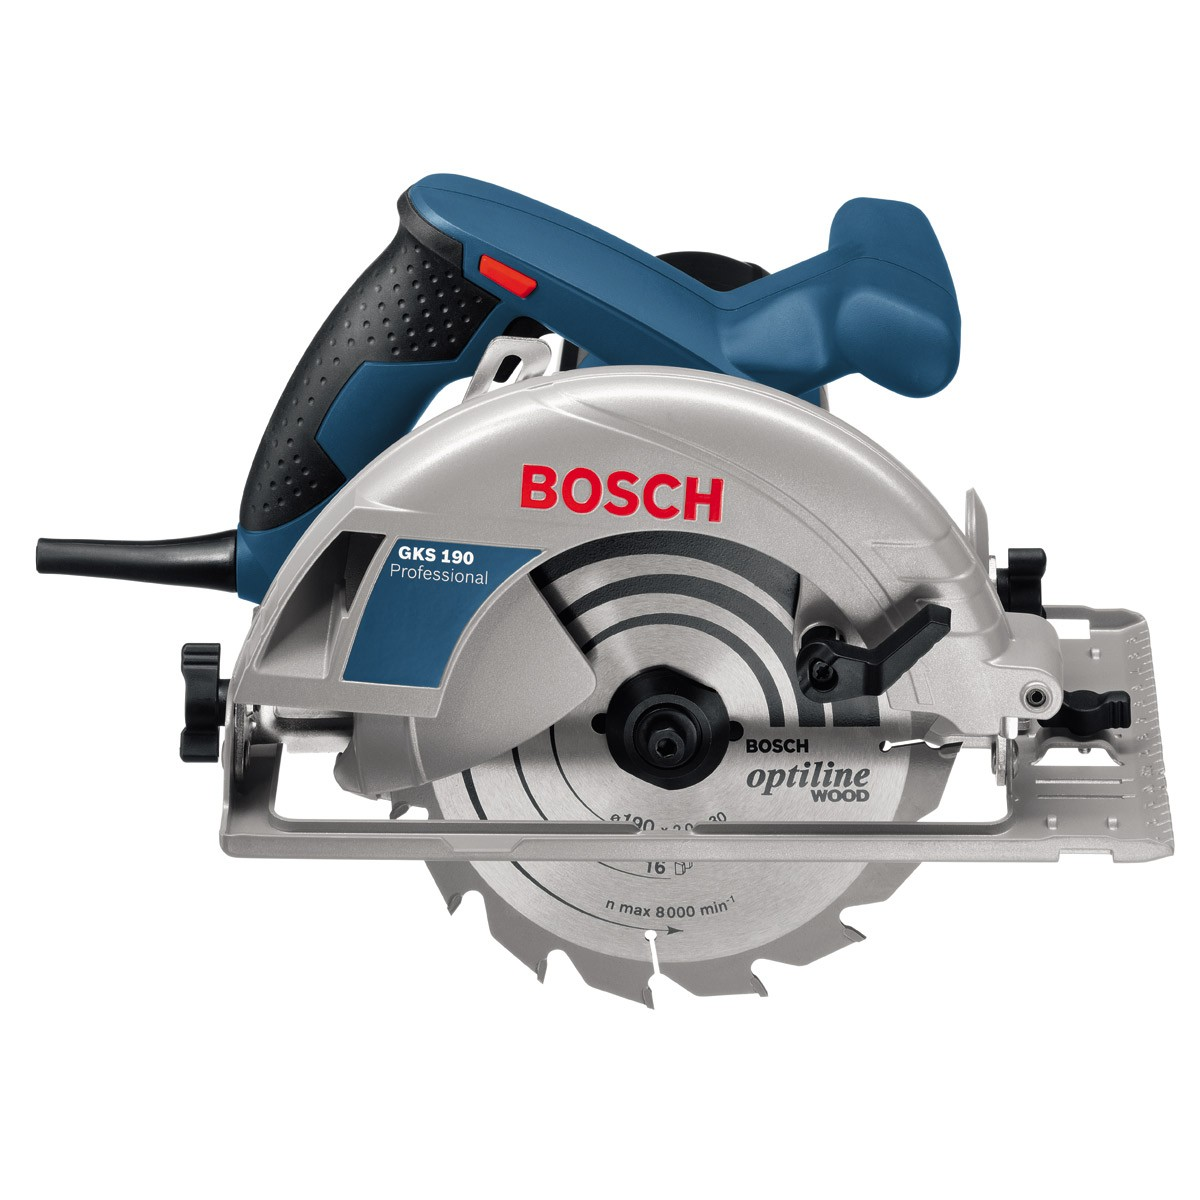 bosch gks 190 circular saw in carry case powertool world. Black Bedroom Furniture Sets. Home Design Ideas